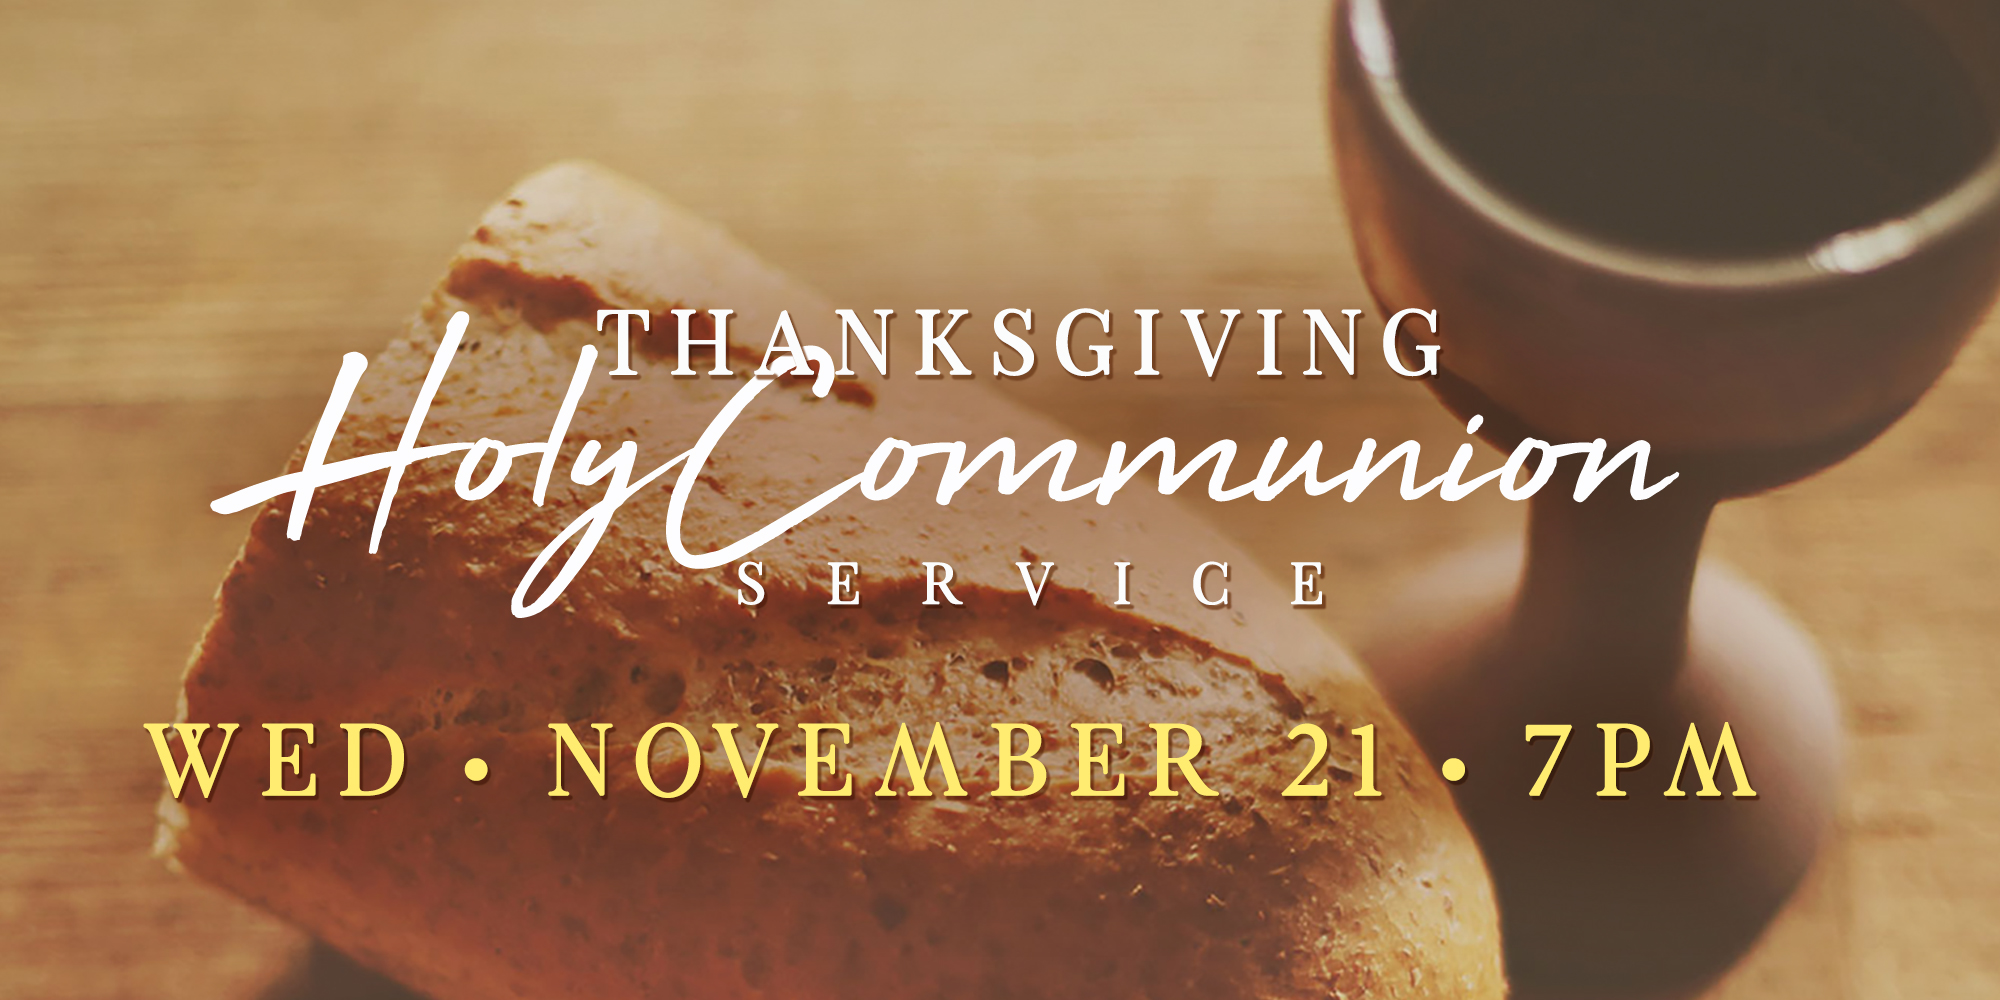 Thanksgiving Holy Communion Service